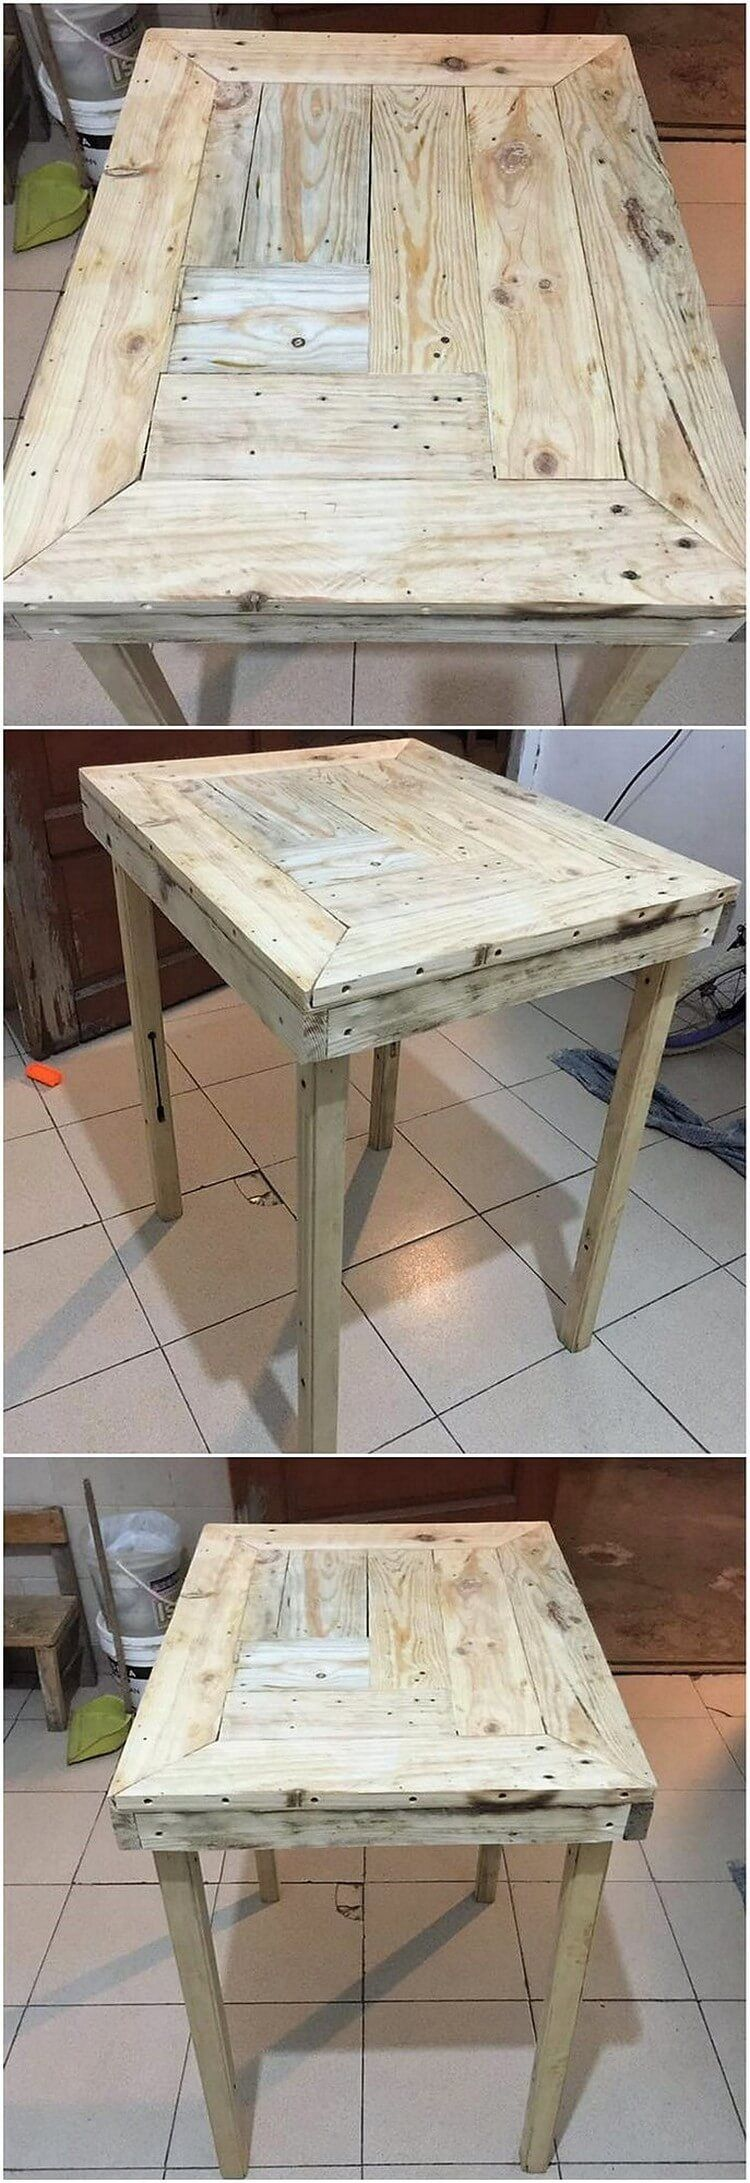 Amazing Ideas to Convert Wooden Pallets into